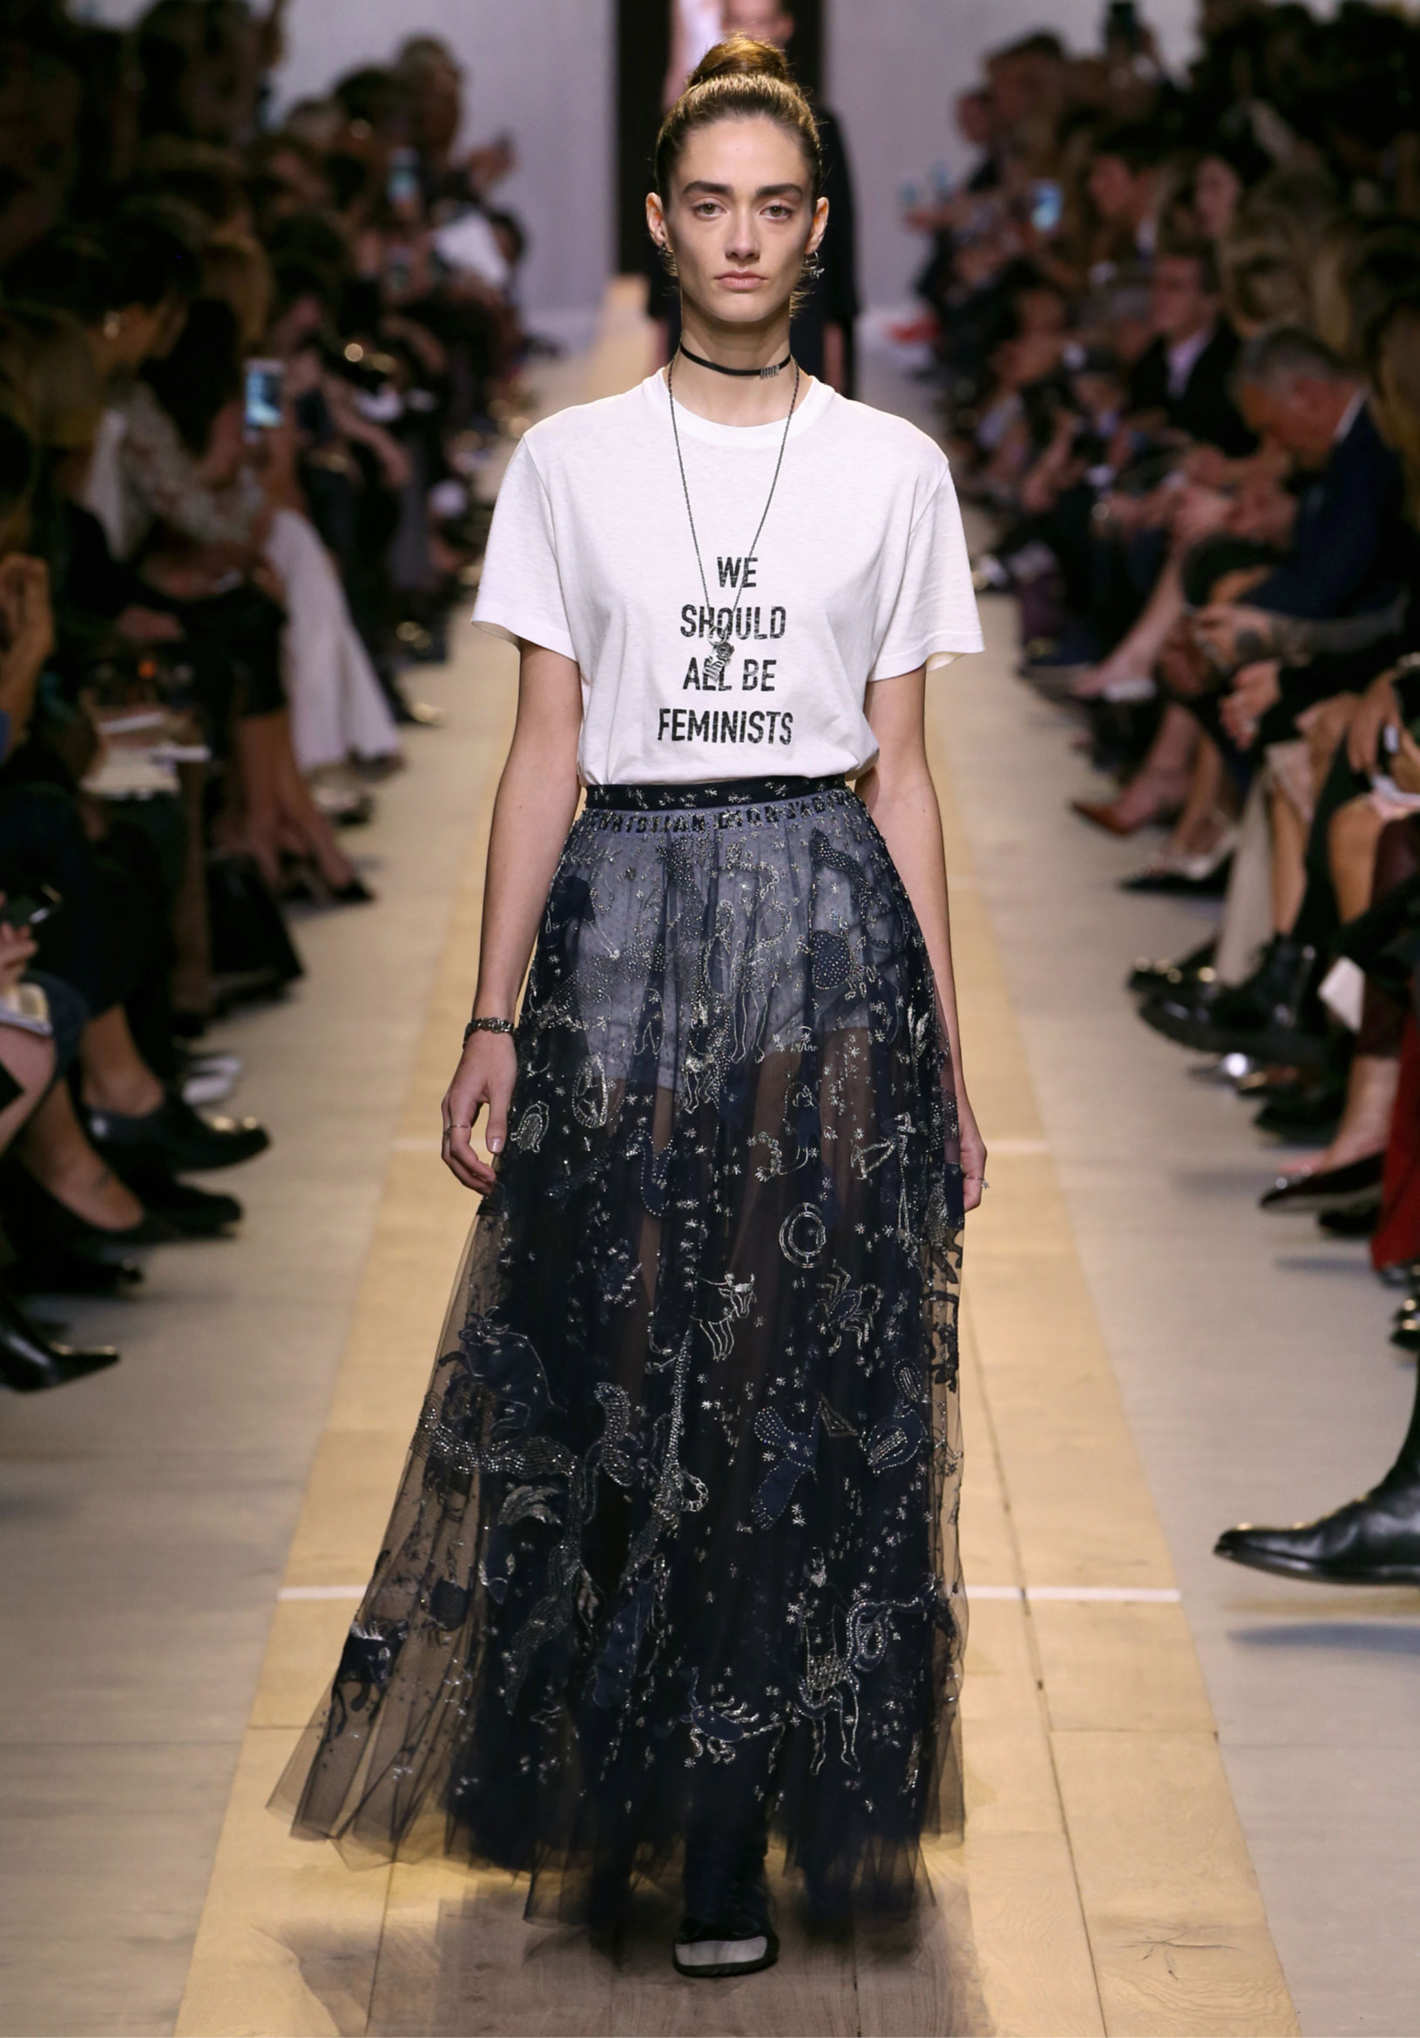 feminism, slogans, dior, Maria grazia, chiamando, we should all be feminist, ciceroni